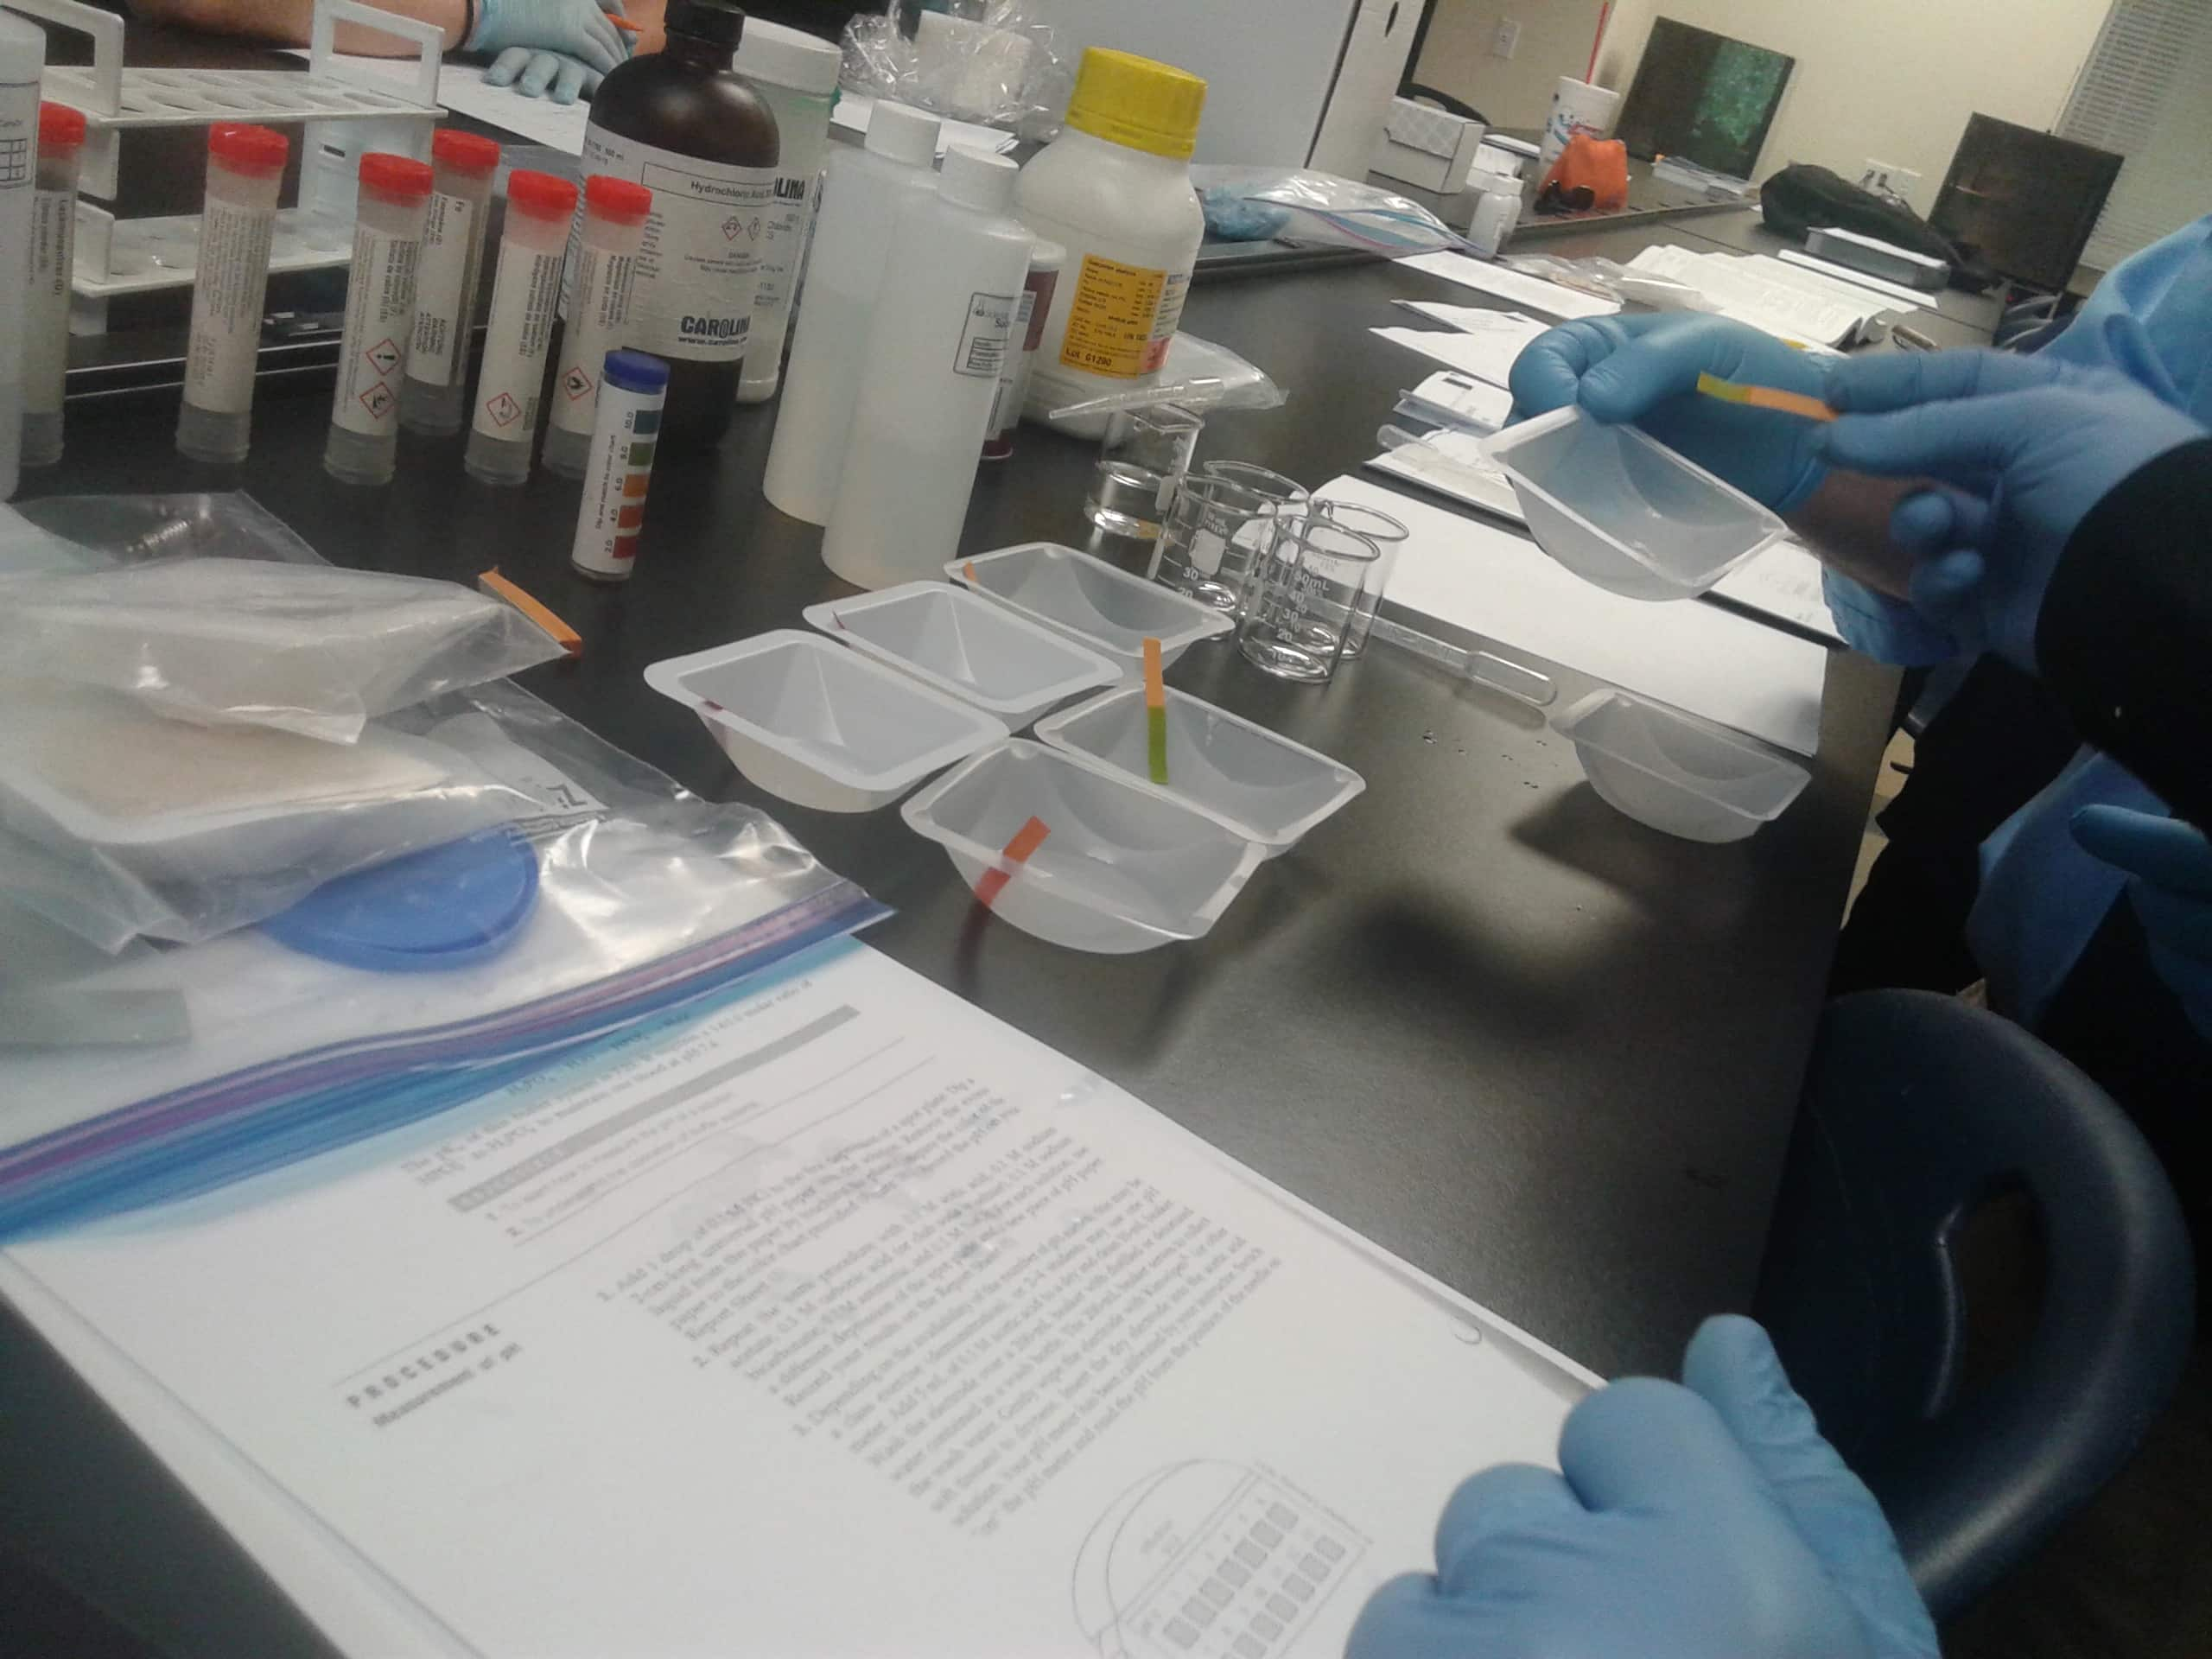 Biomedical Students Have fun Experimenting in the Classroom